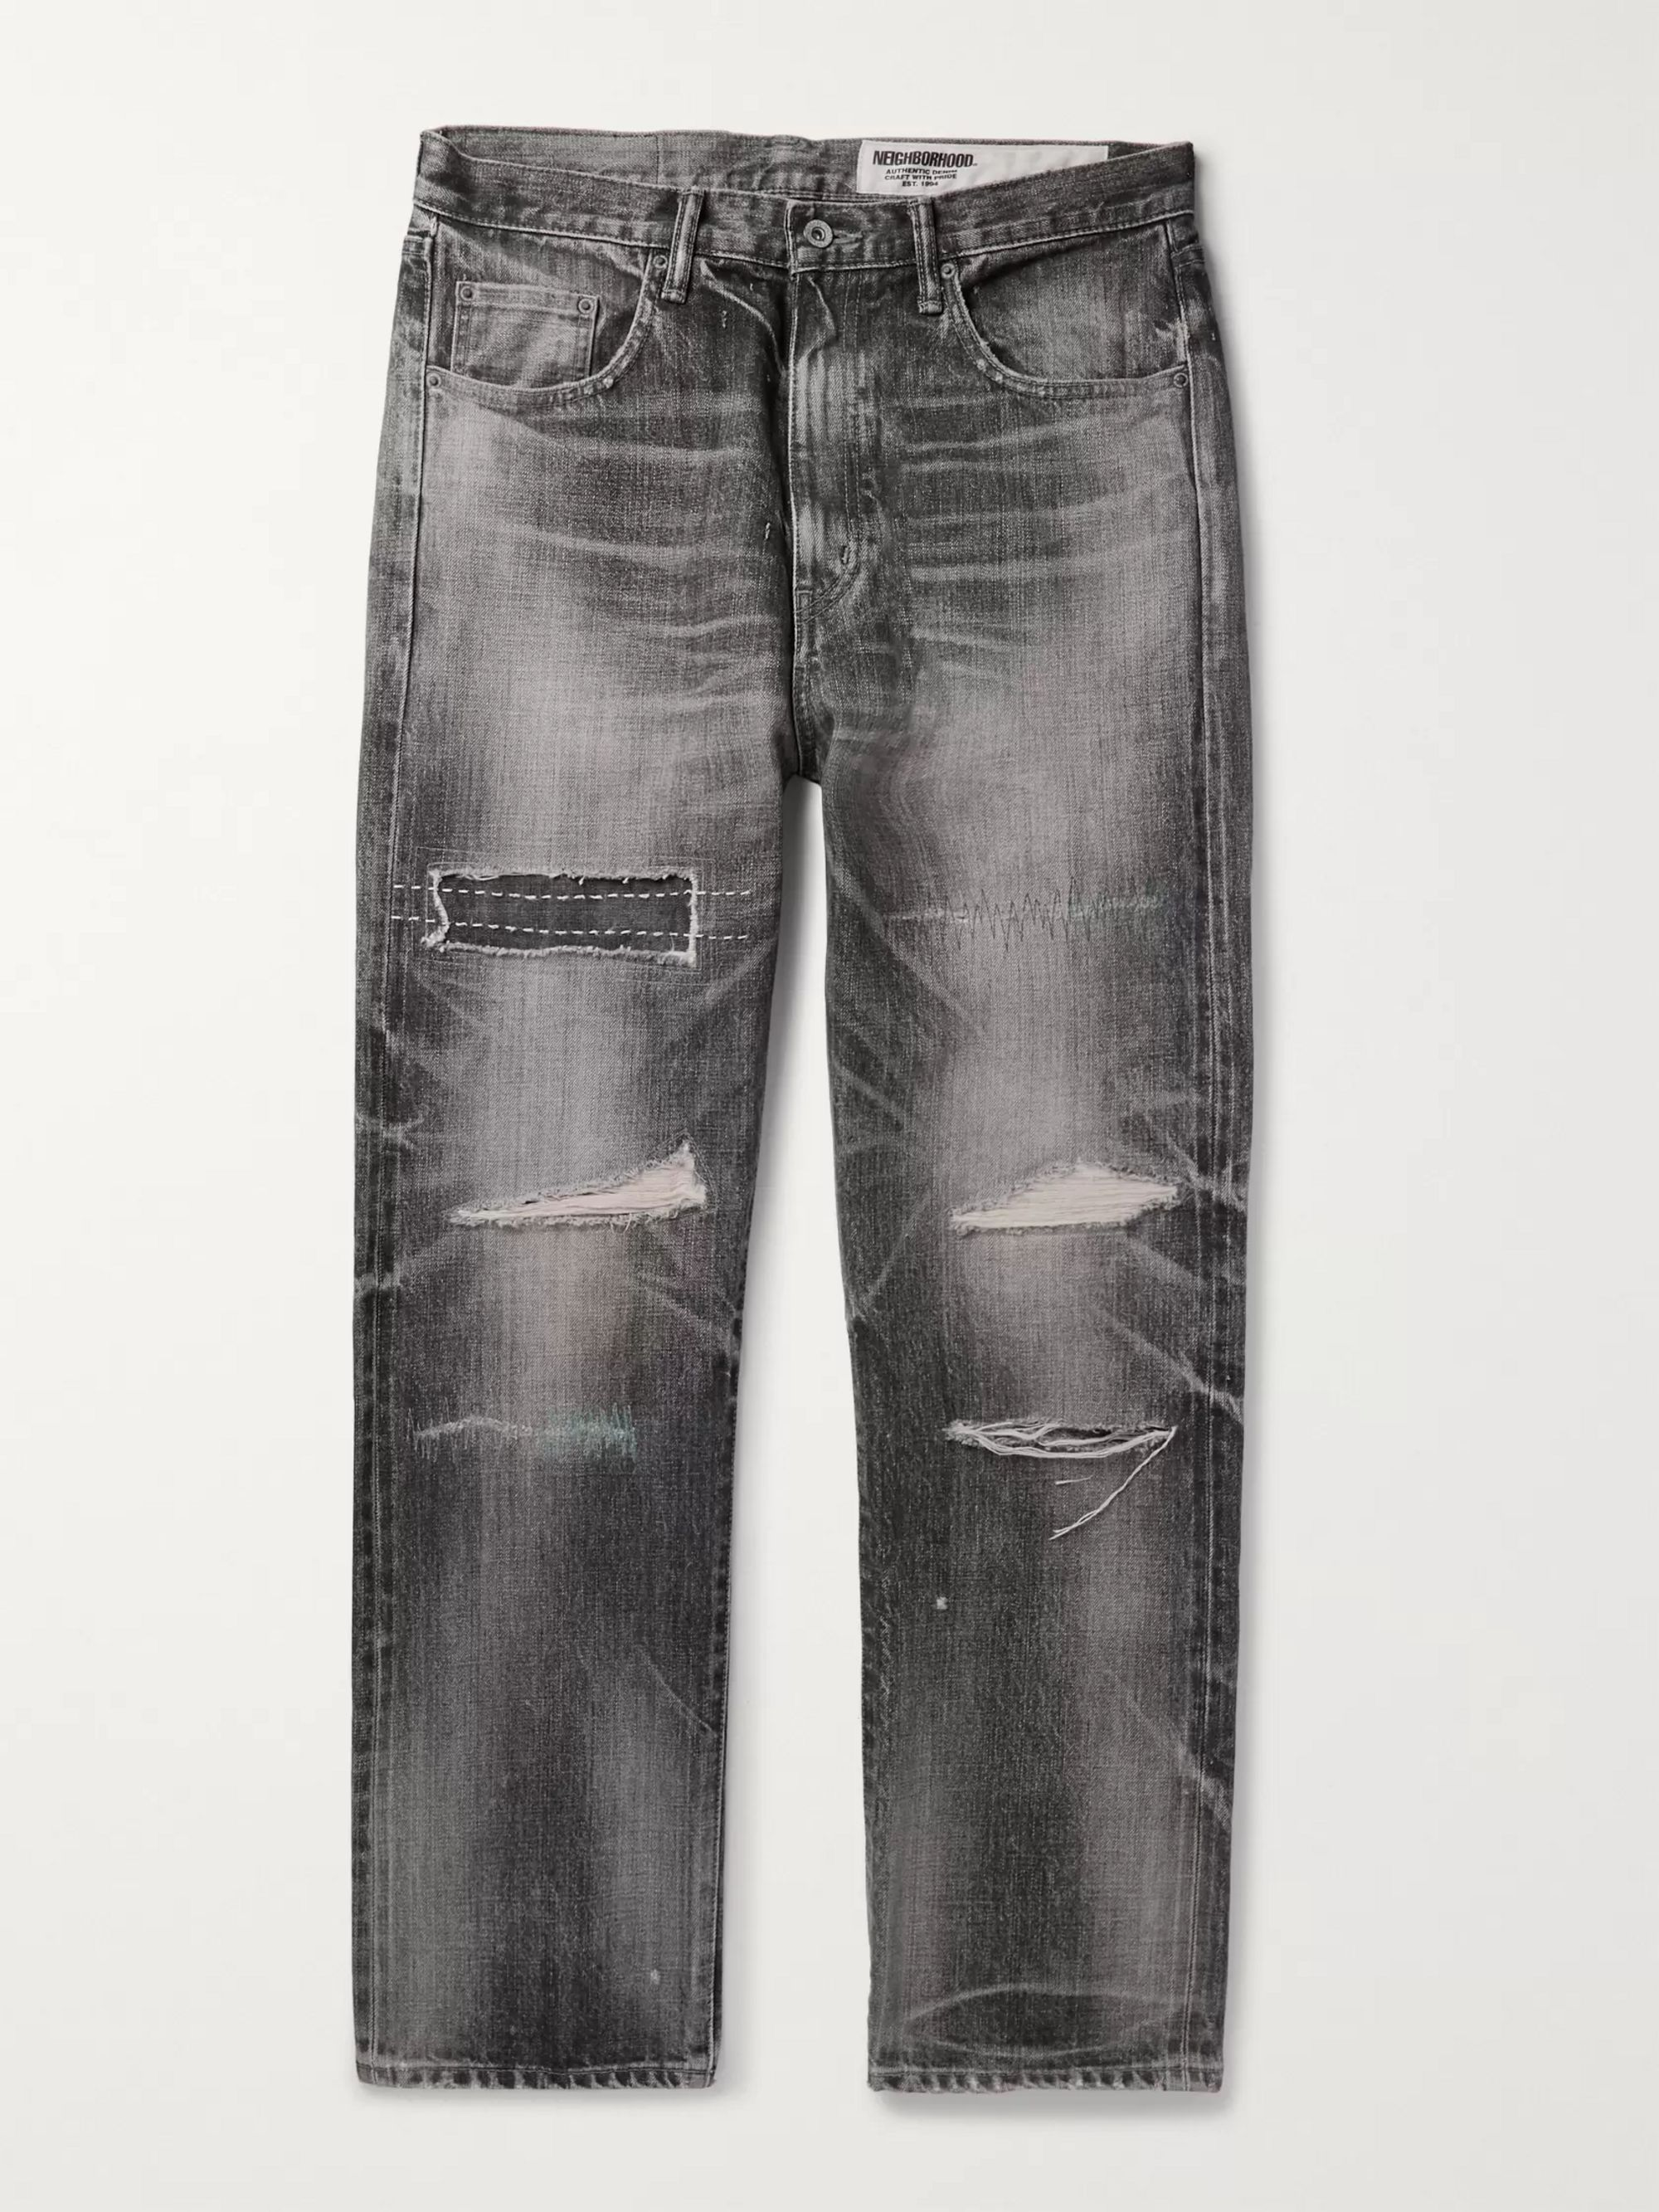 Neighborhood Claw Mod Savage Slim-Fit Distressed Embroidered Denim Jeans